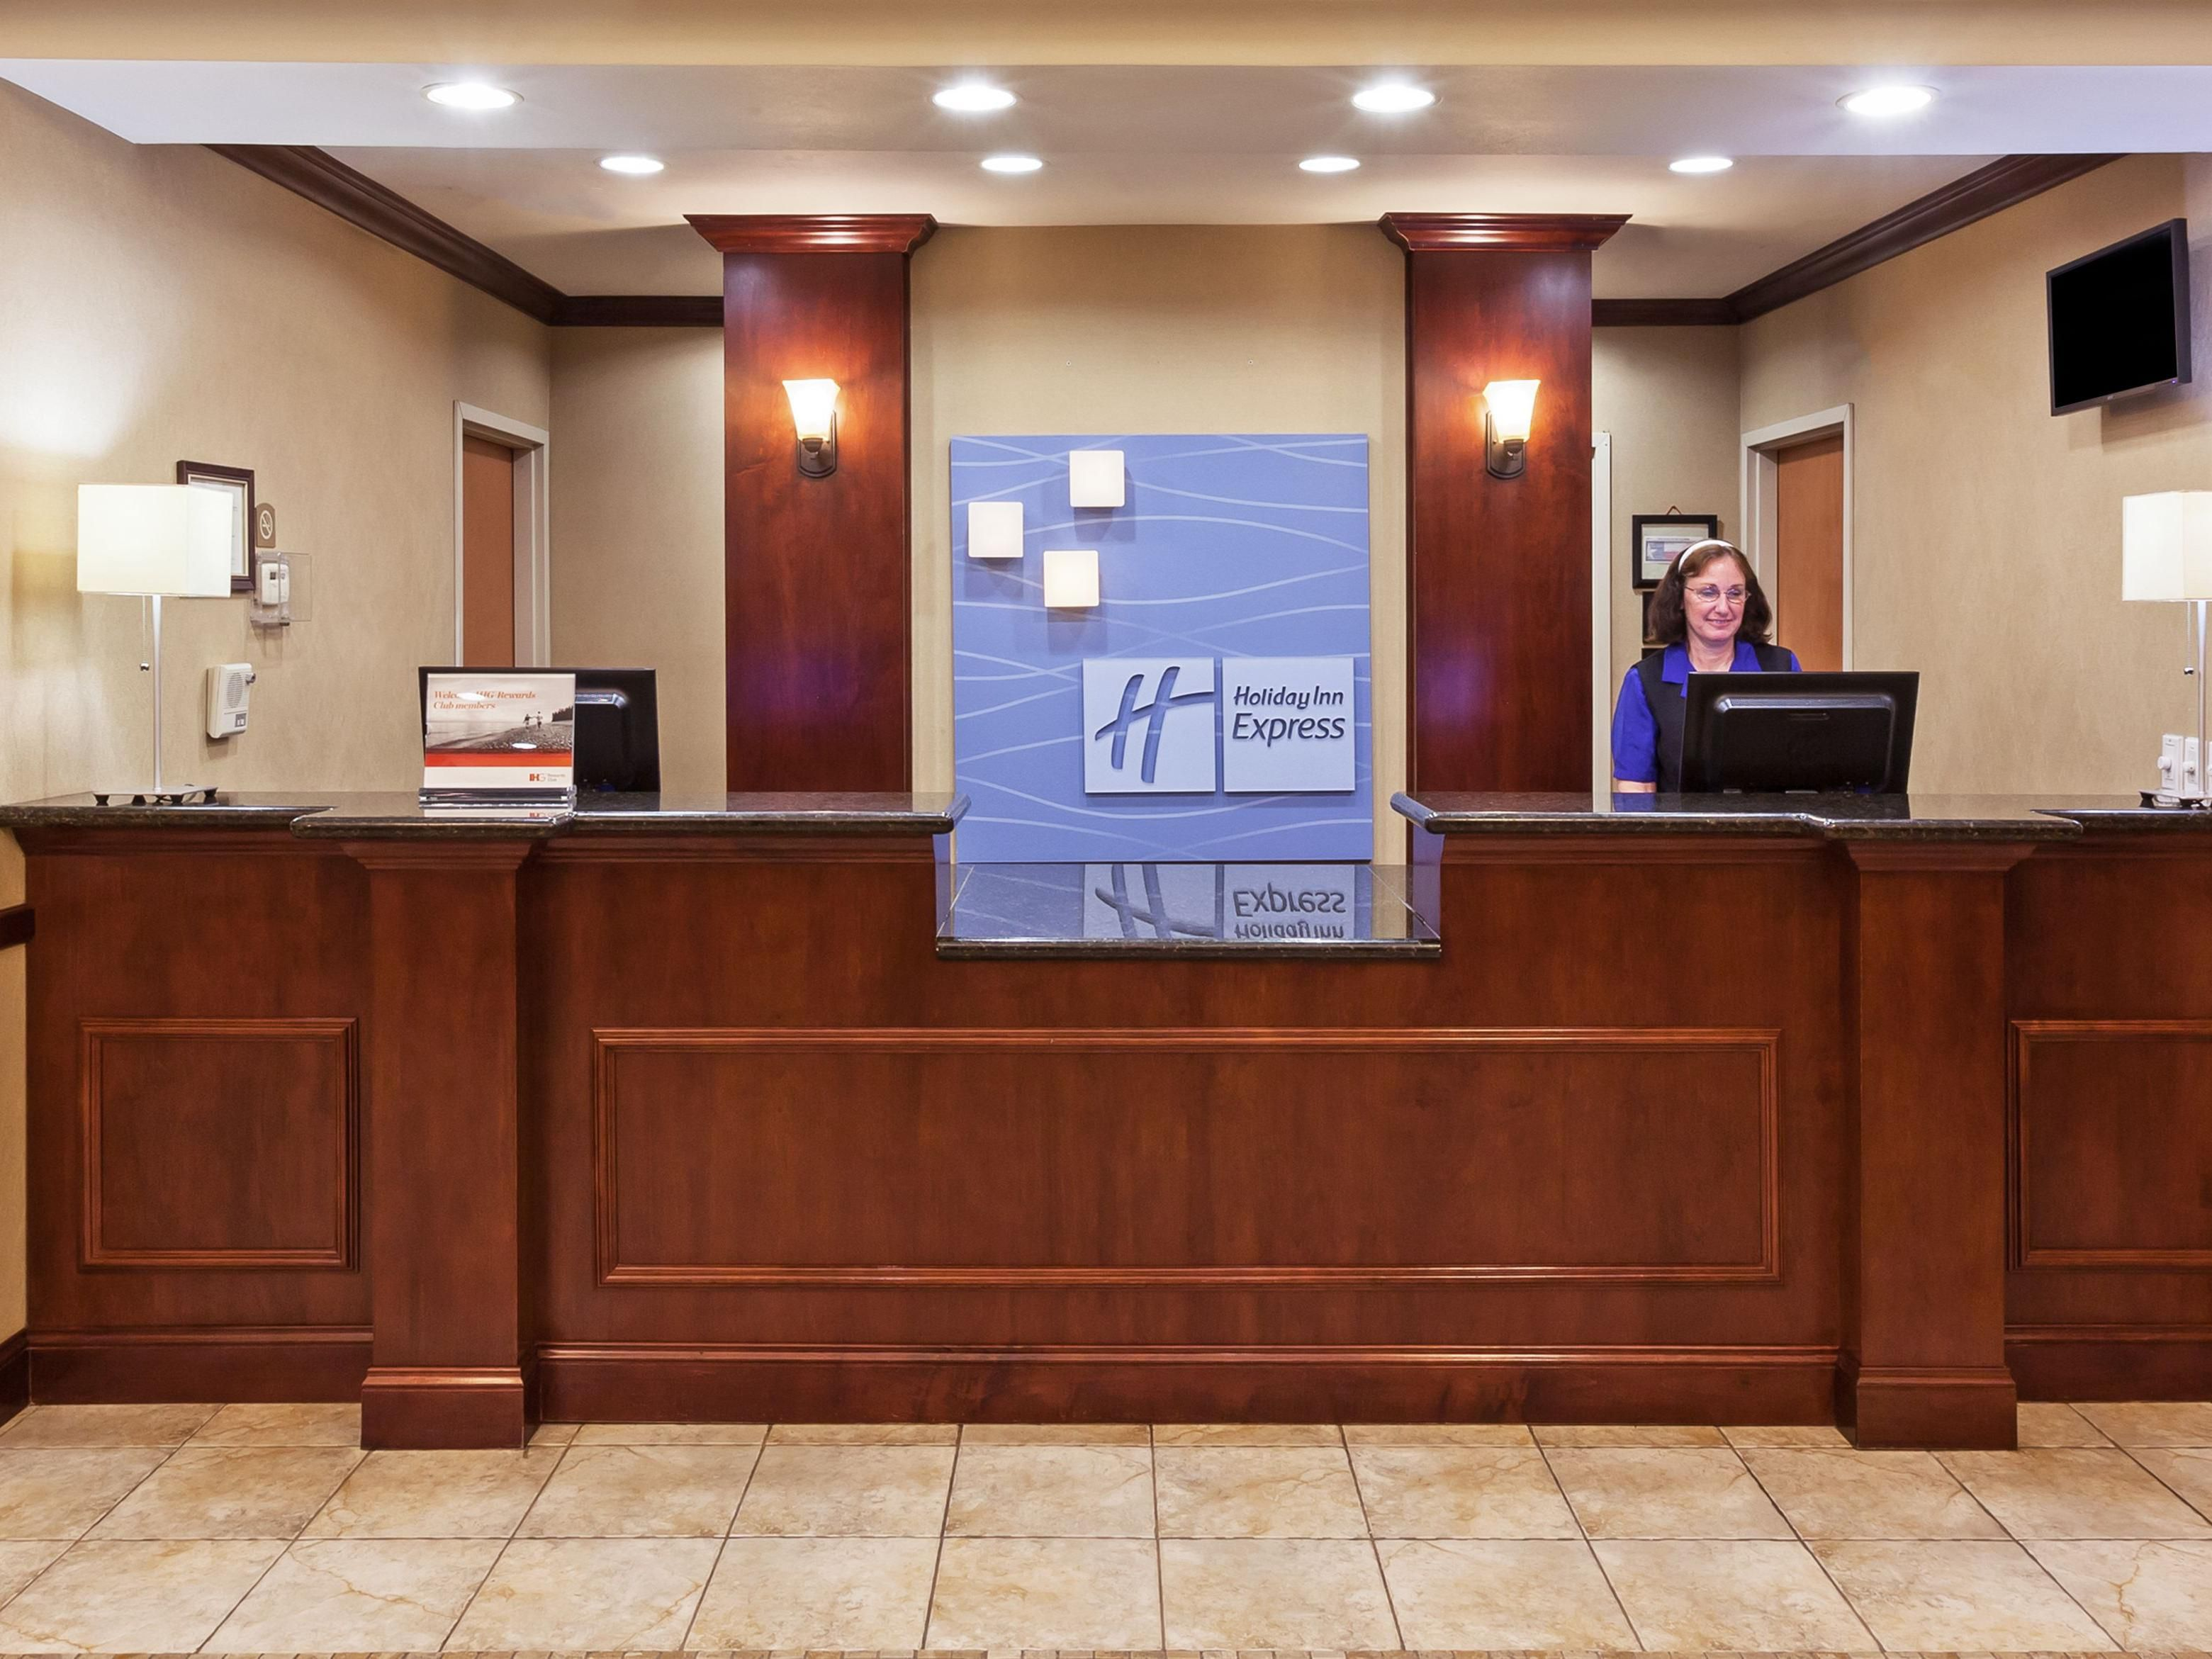 Our front desk welcomes you